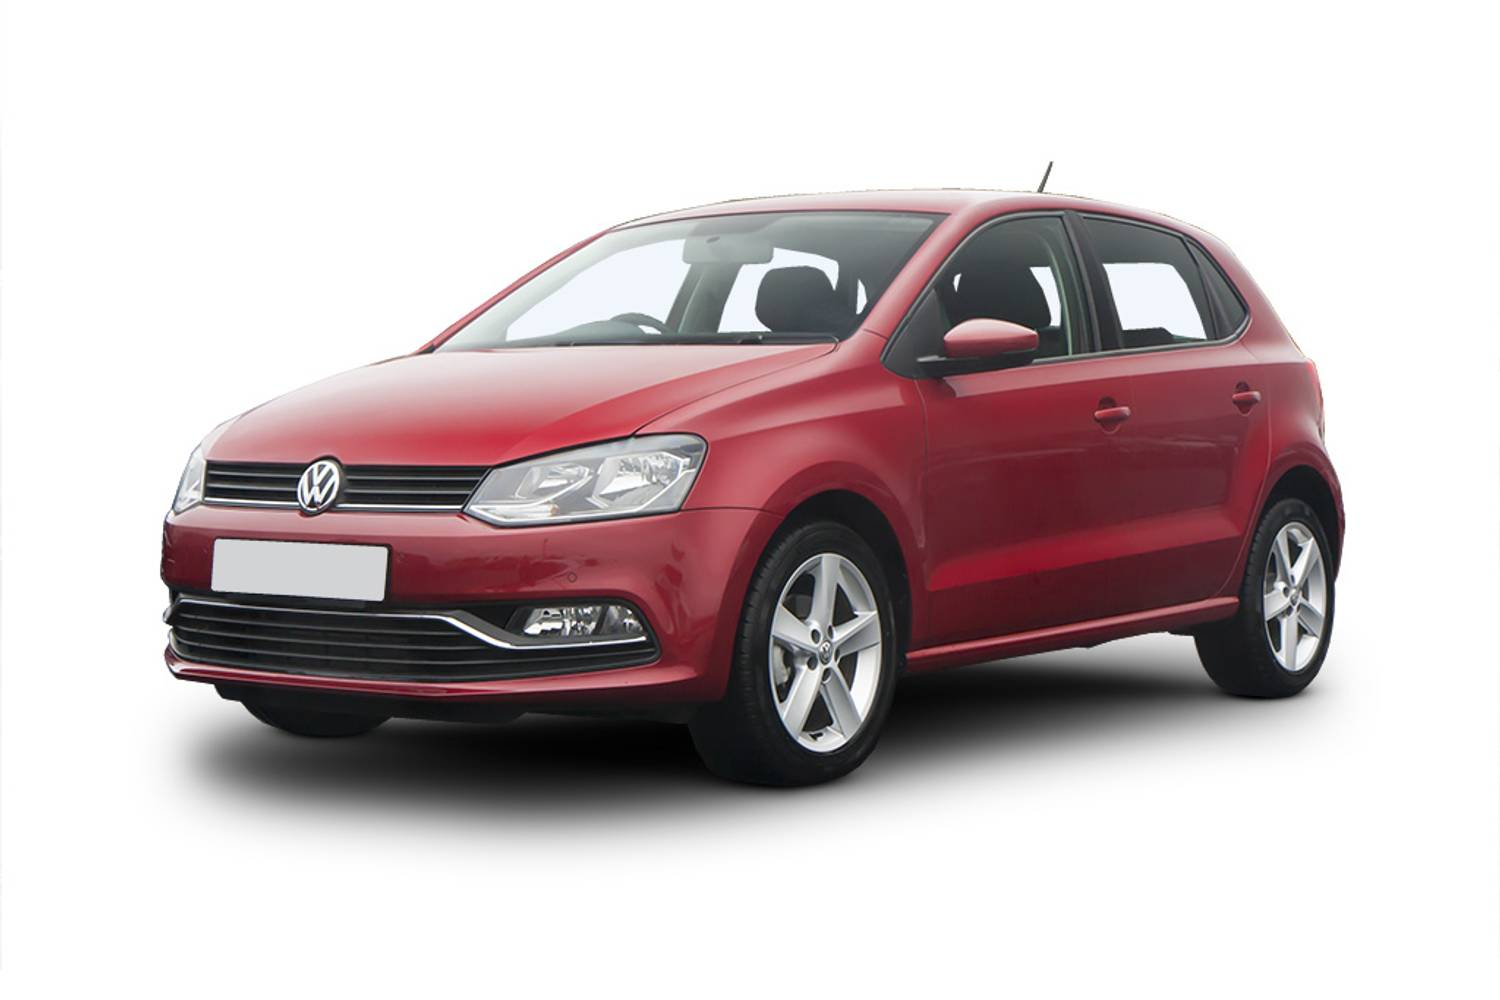 new volkswagen polo diesel hatchback 1 4 tdi 75 beats 5 door 2016 for sale. Black Bedroom Furniture Sets. Home Design Ideas